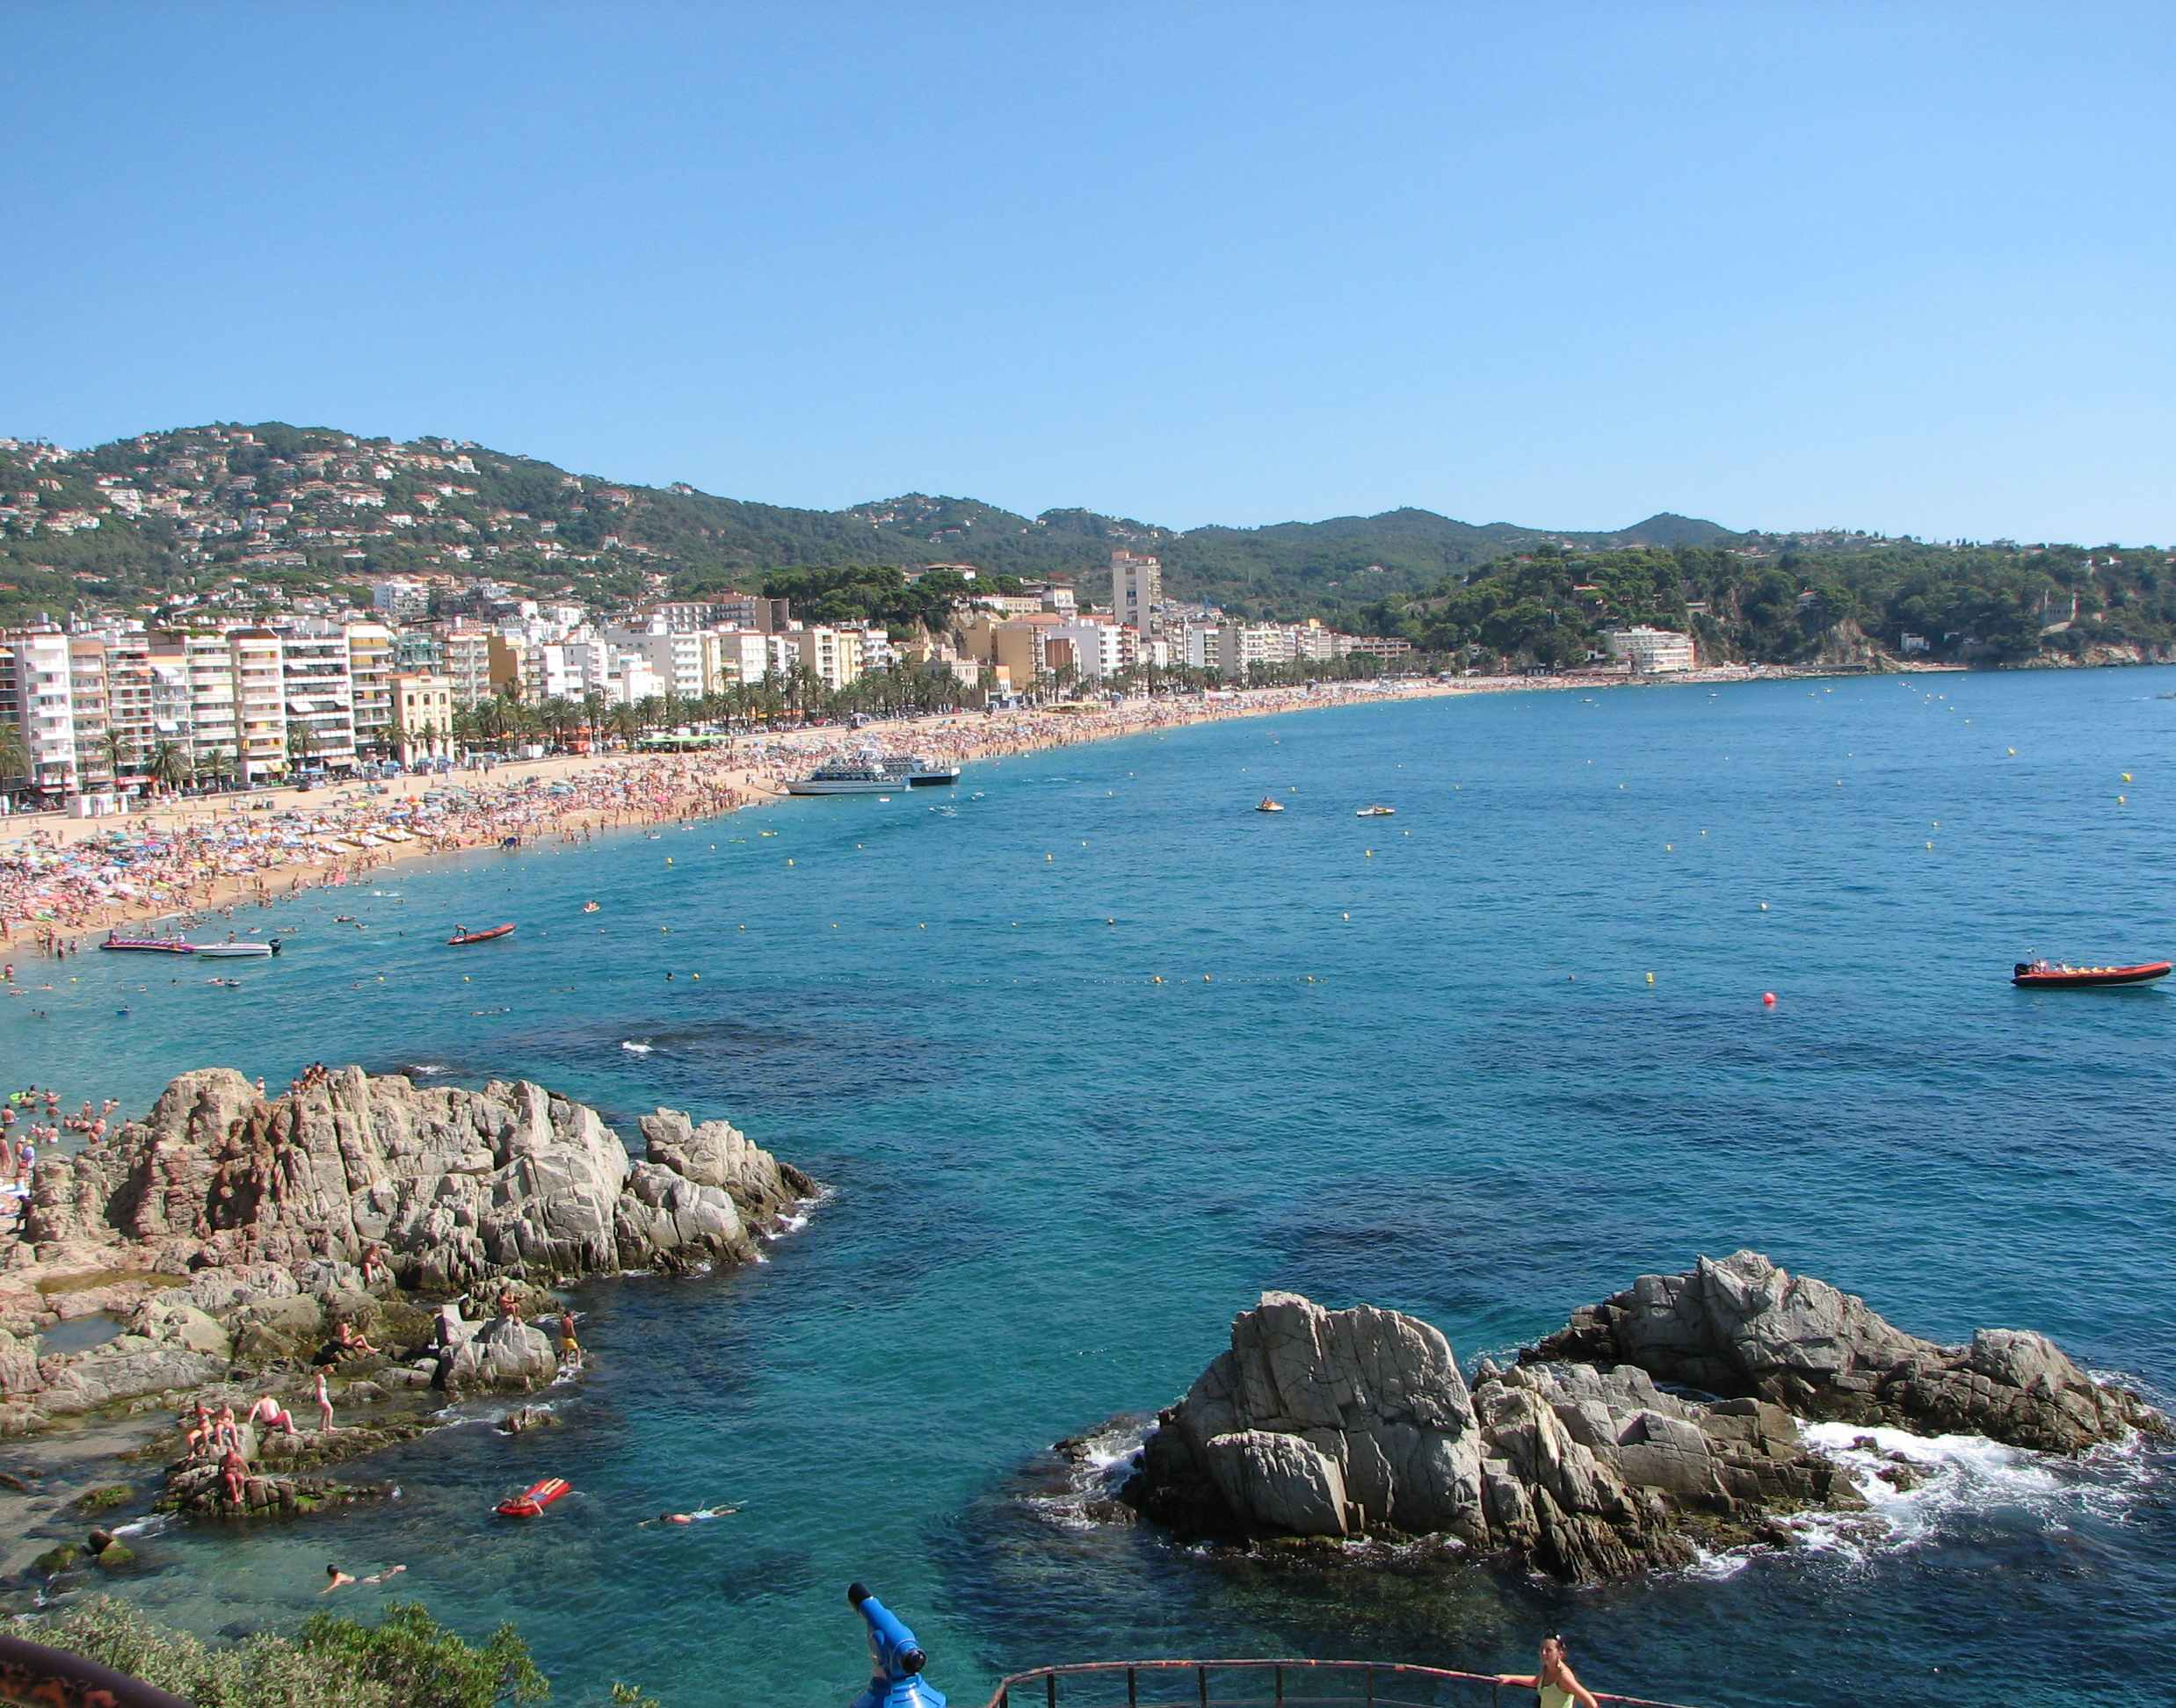 Things to do in Costa Brava - This is a copyright free photo